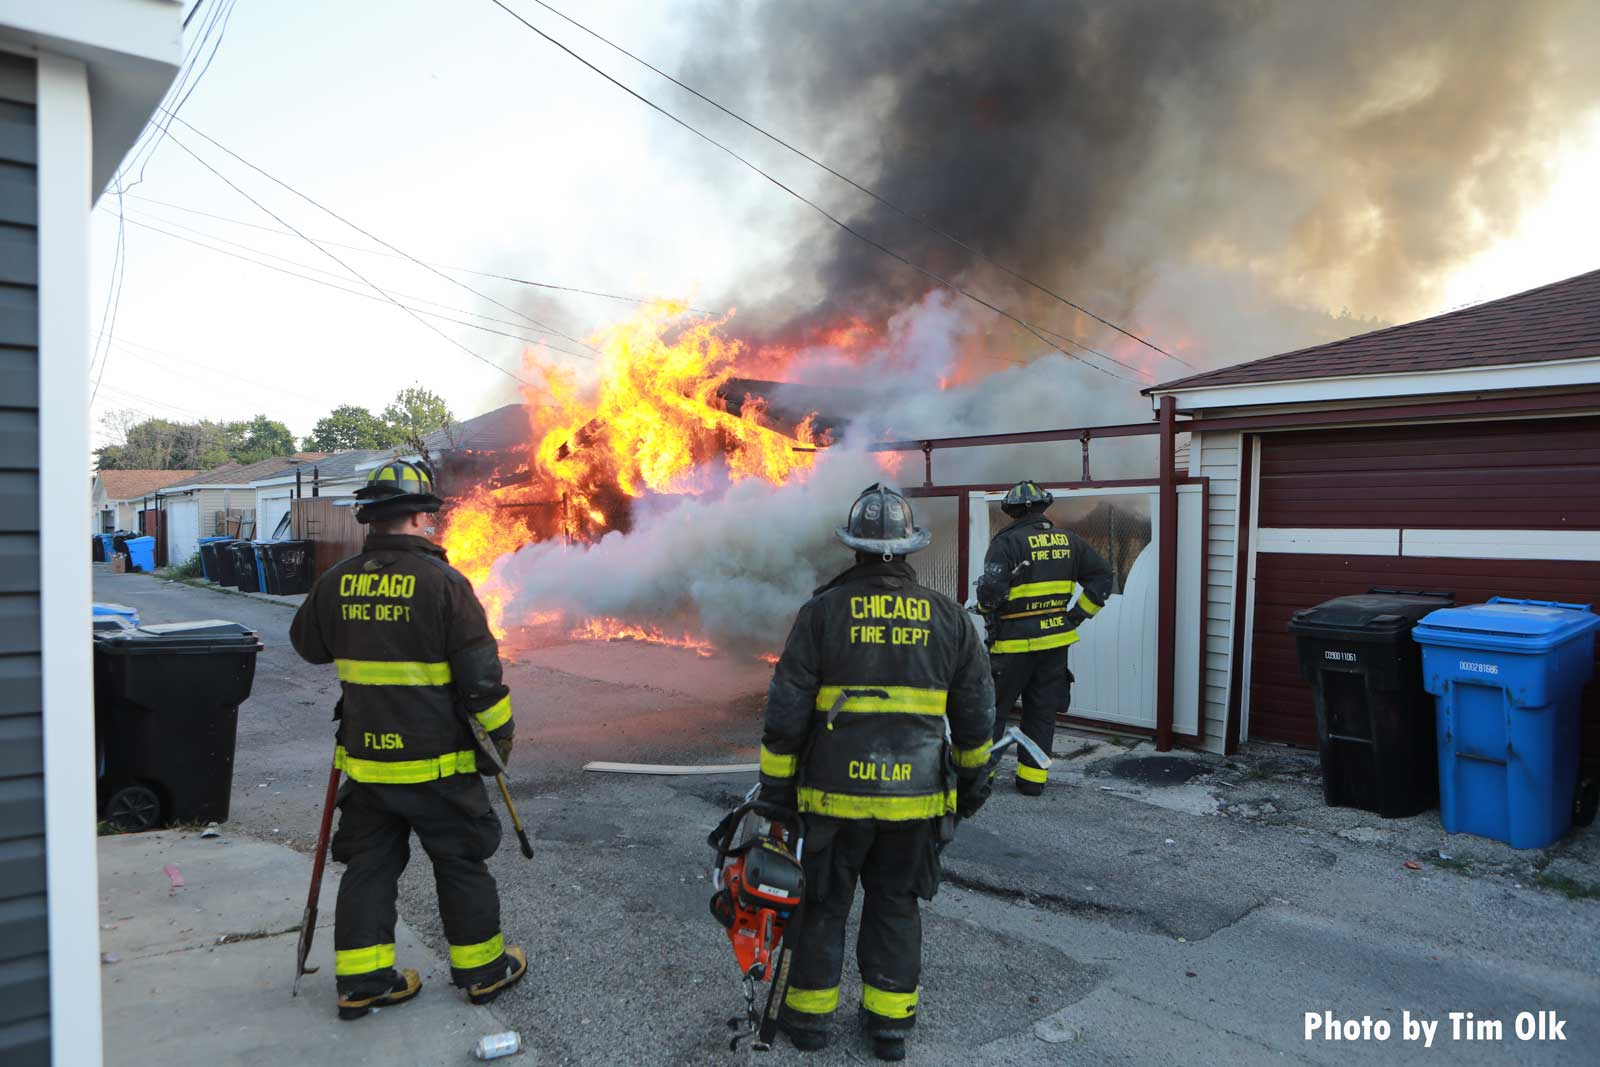 Chicago firefighters apply water to raging fire